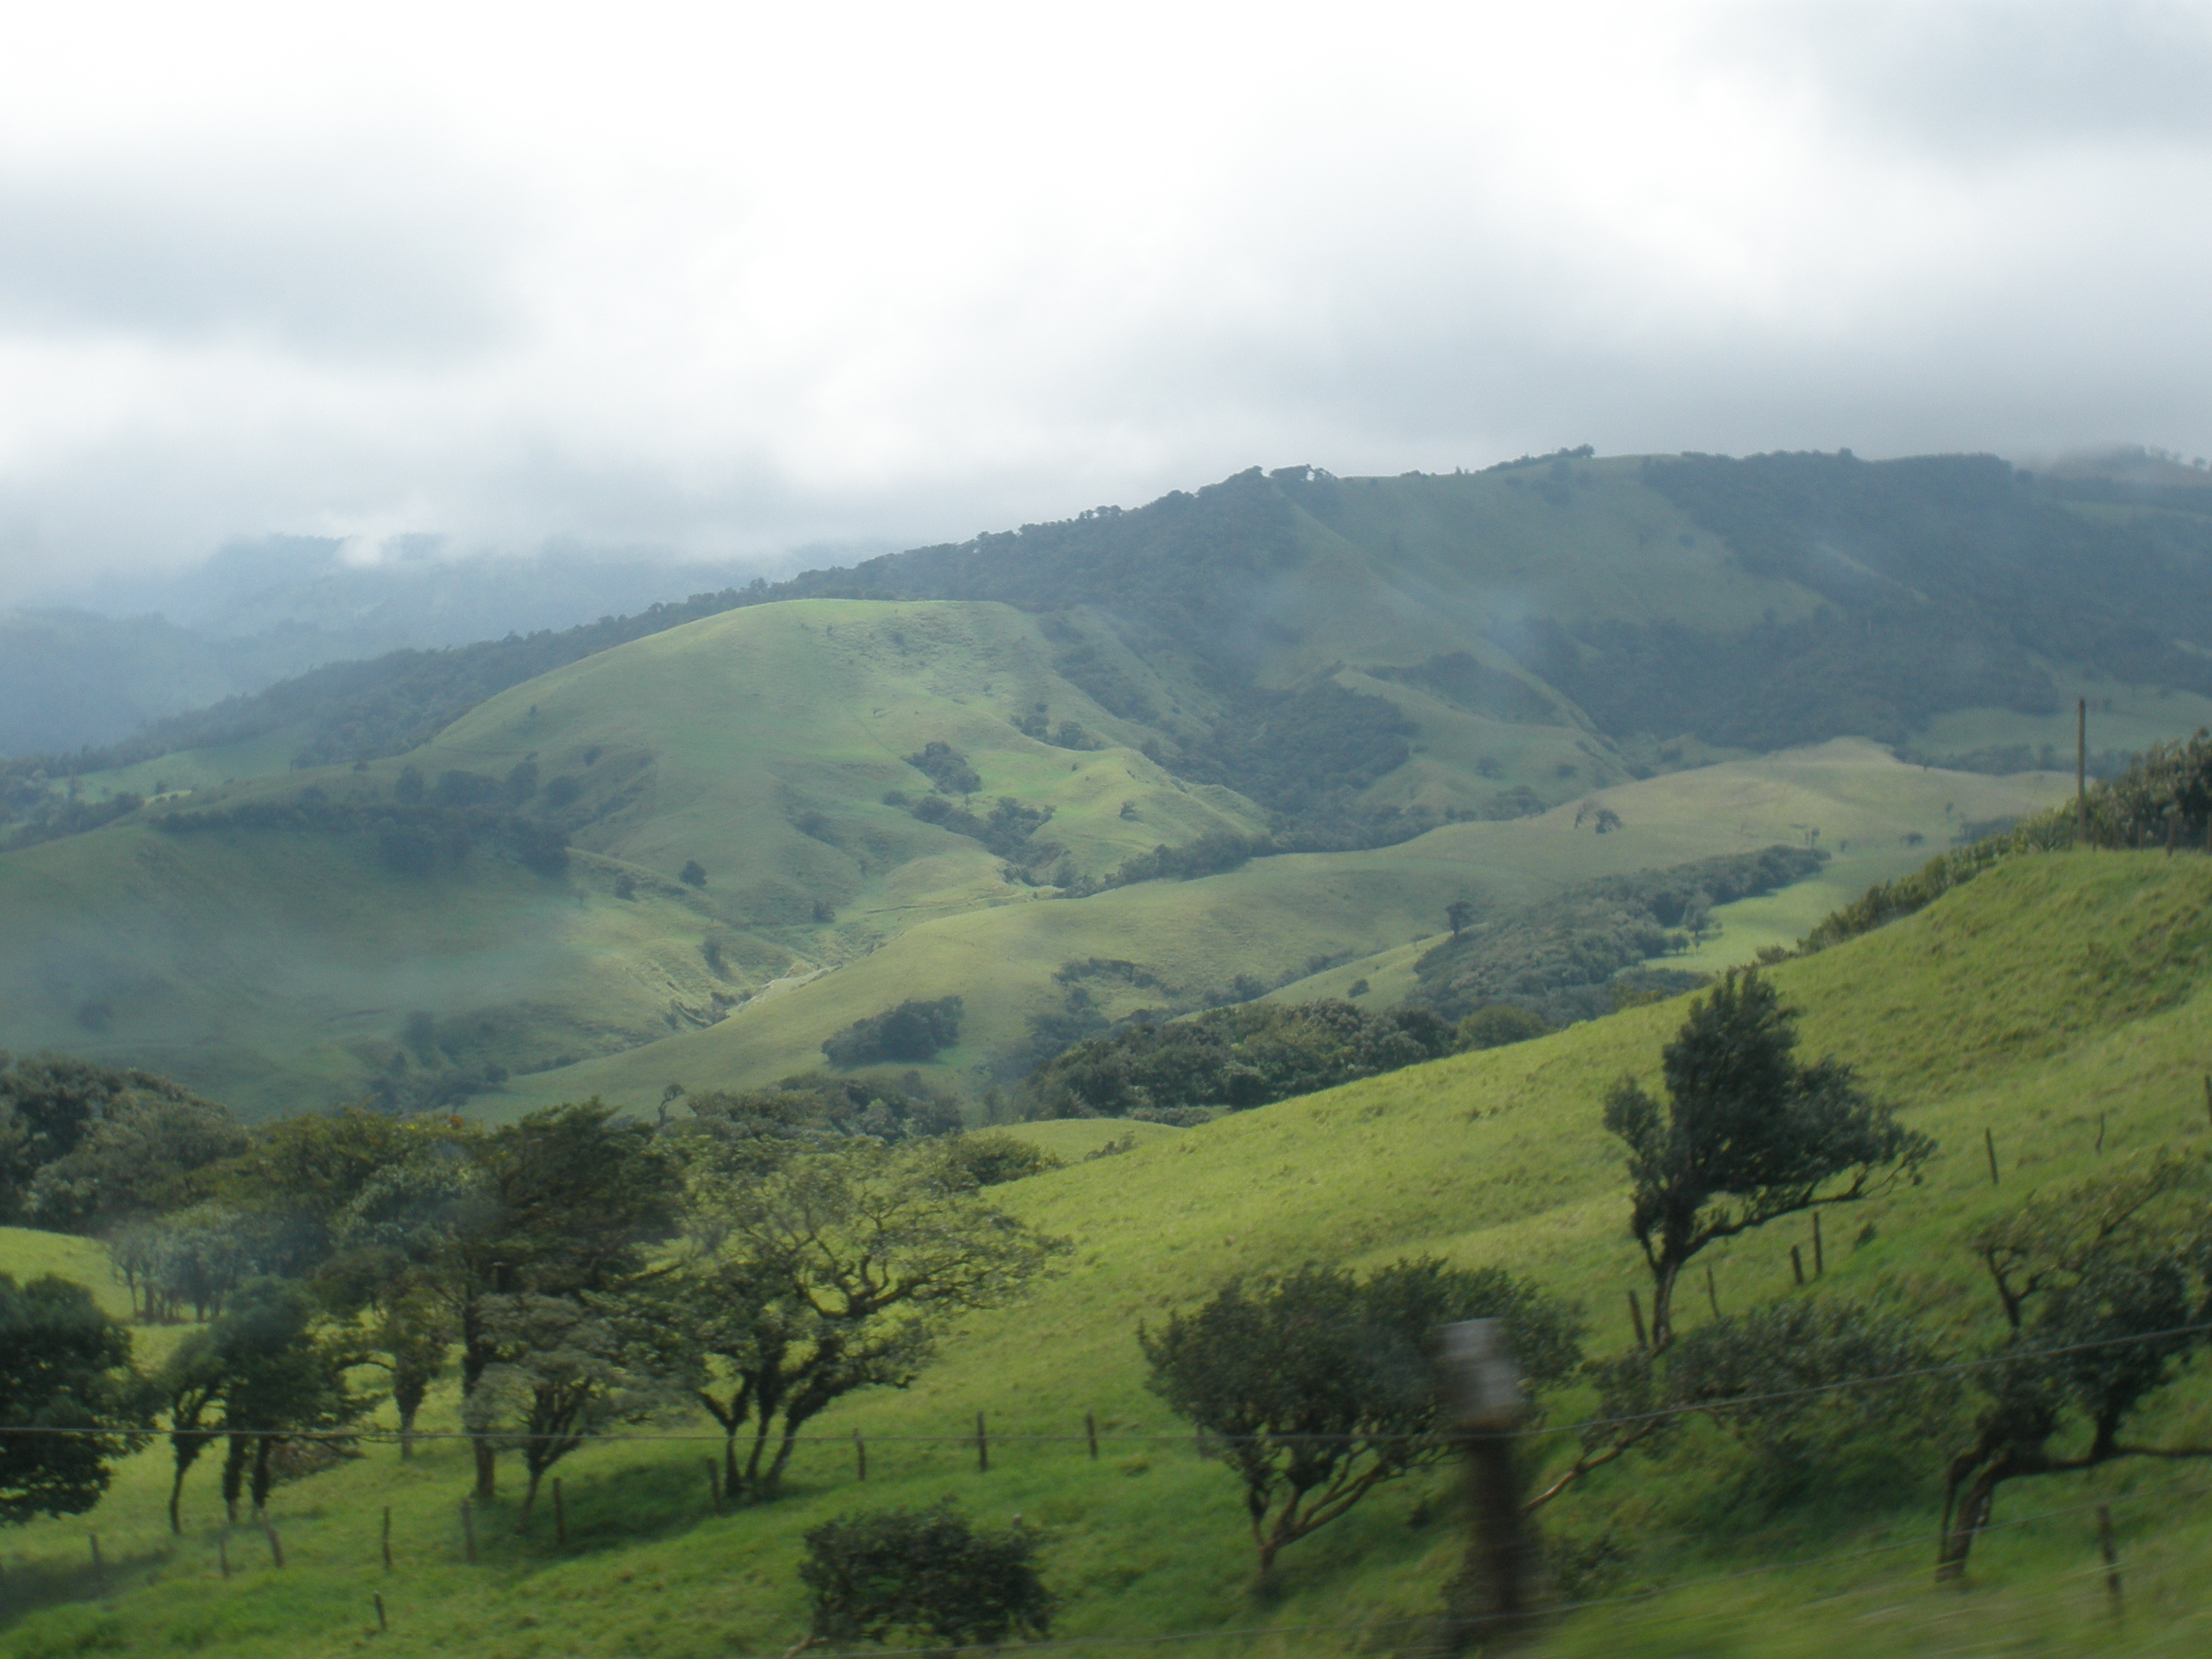 The drive to Monteverde